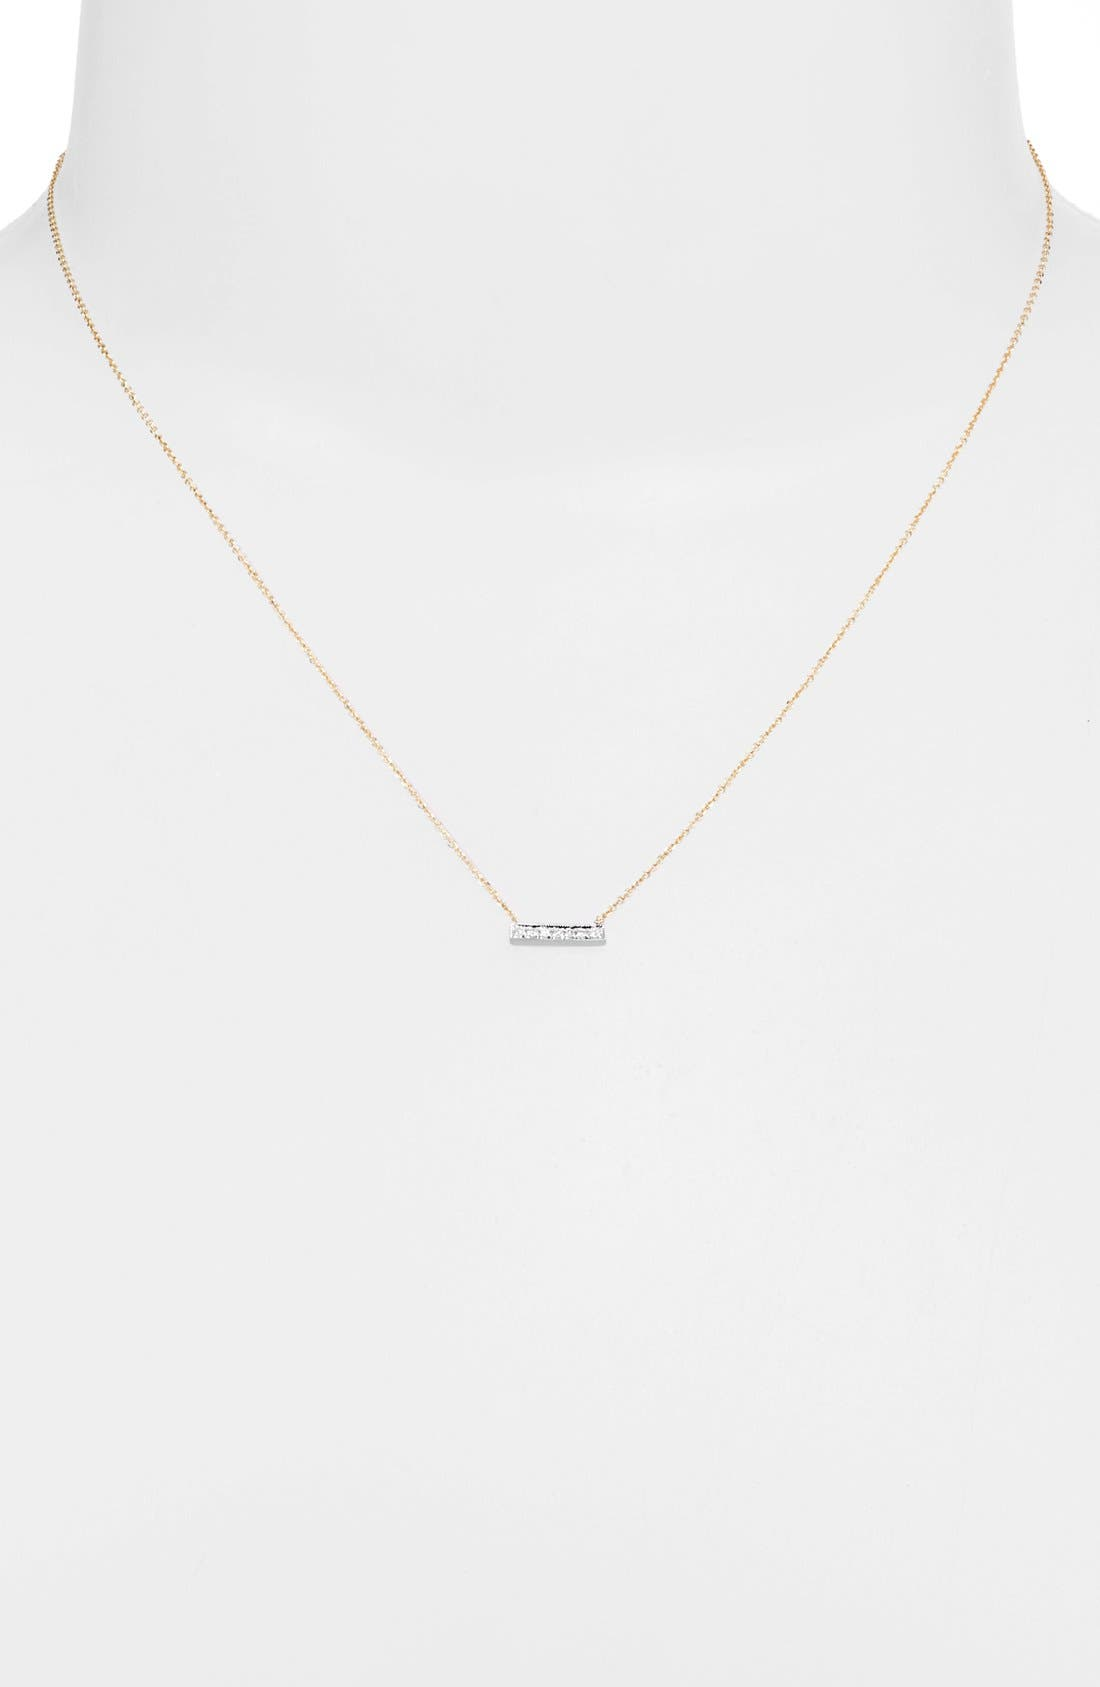 'Sylvie Rose' Diamond Bar Pendant Necklace,                             Alternate thumbnail 8, color,                             YELLOW GOLD